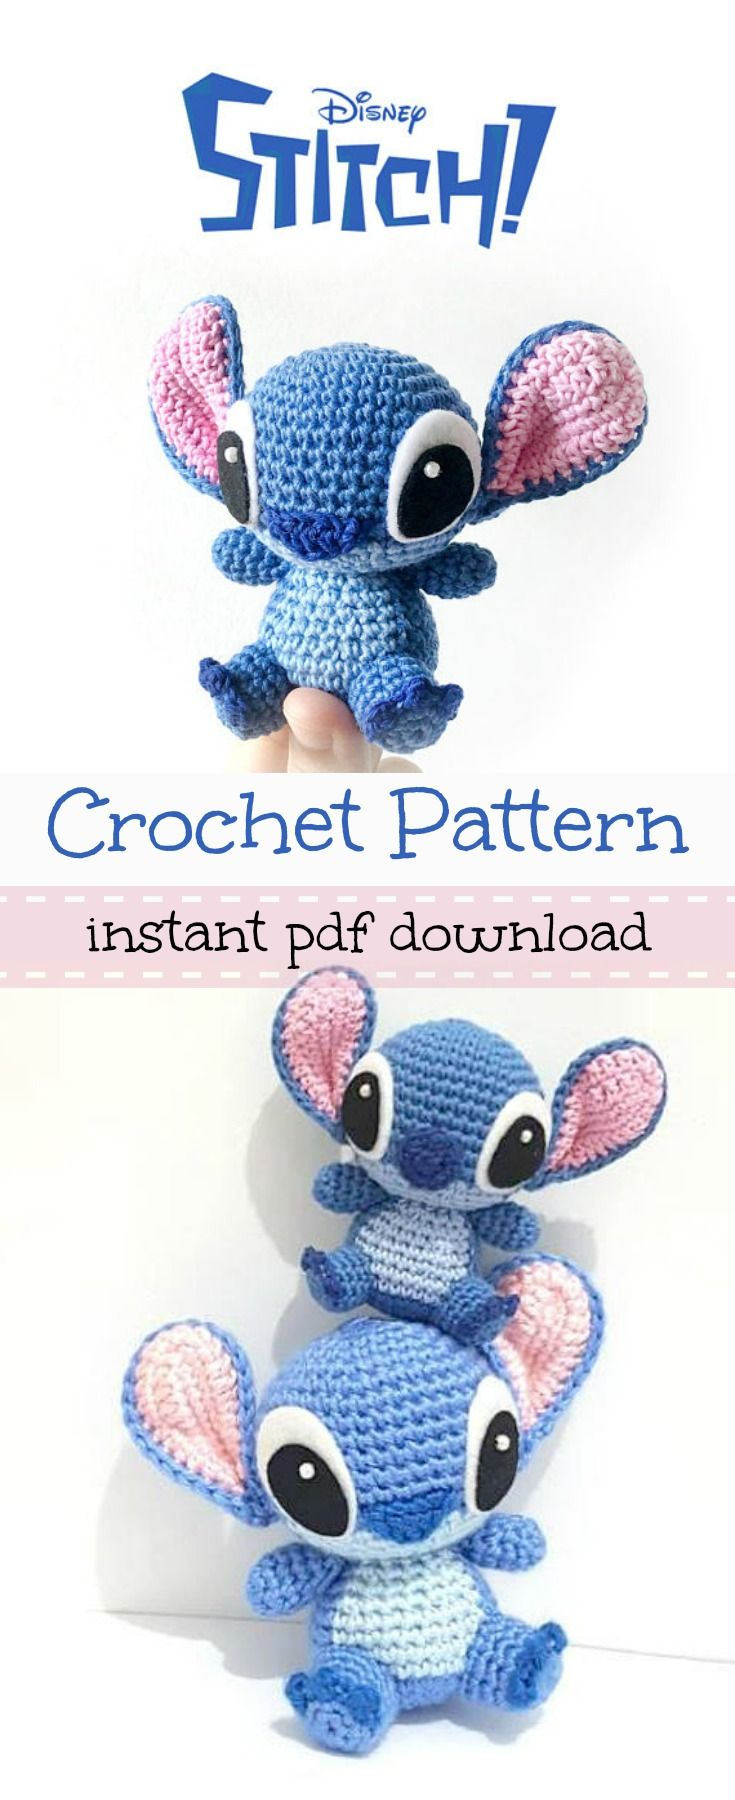 Disney's Stitch from Lilo and Stitch amigurumi crochet pattern.